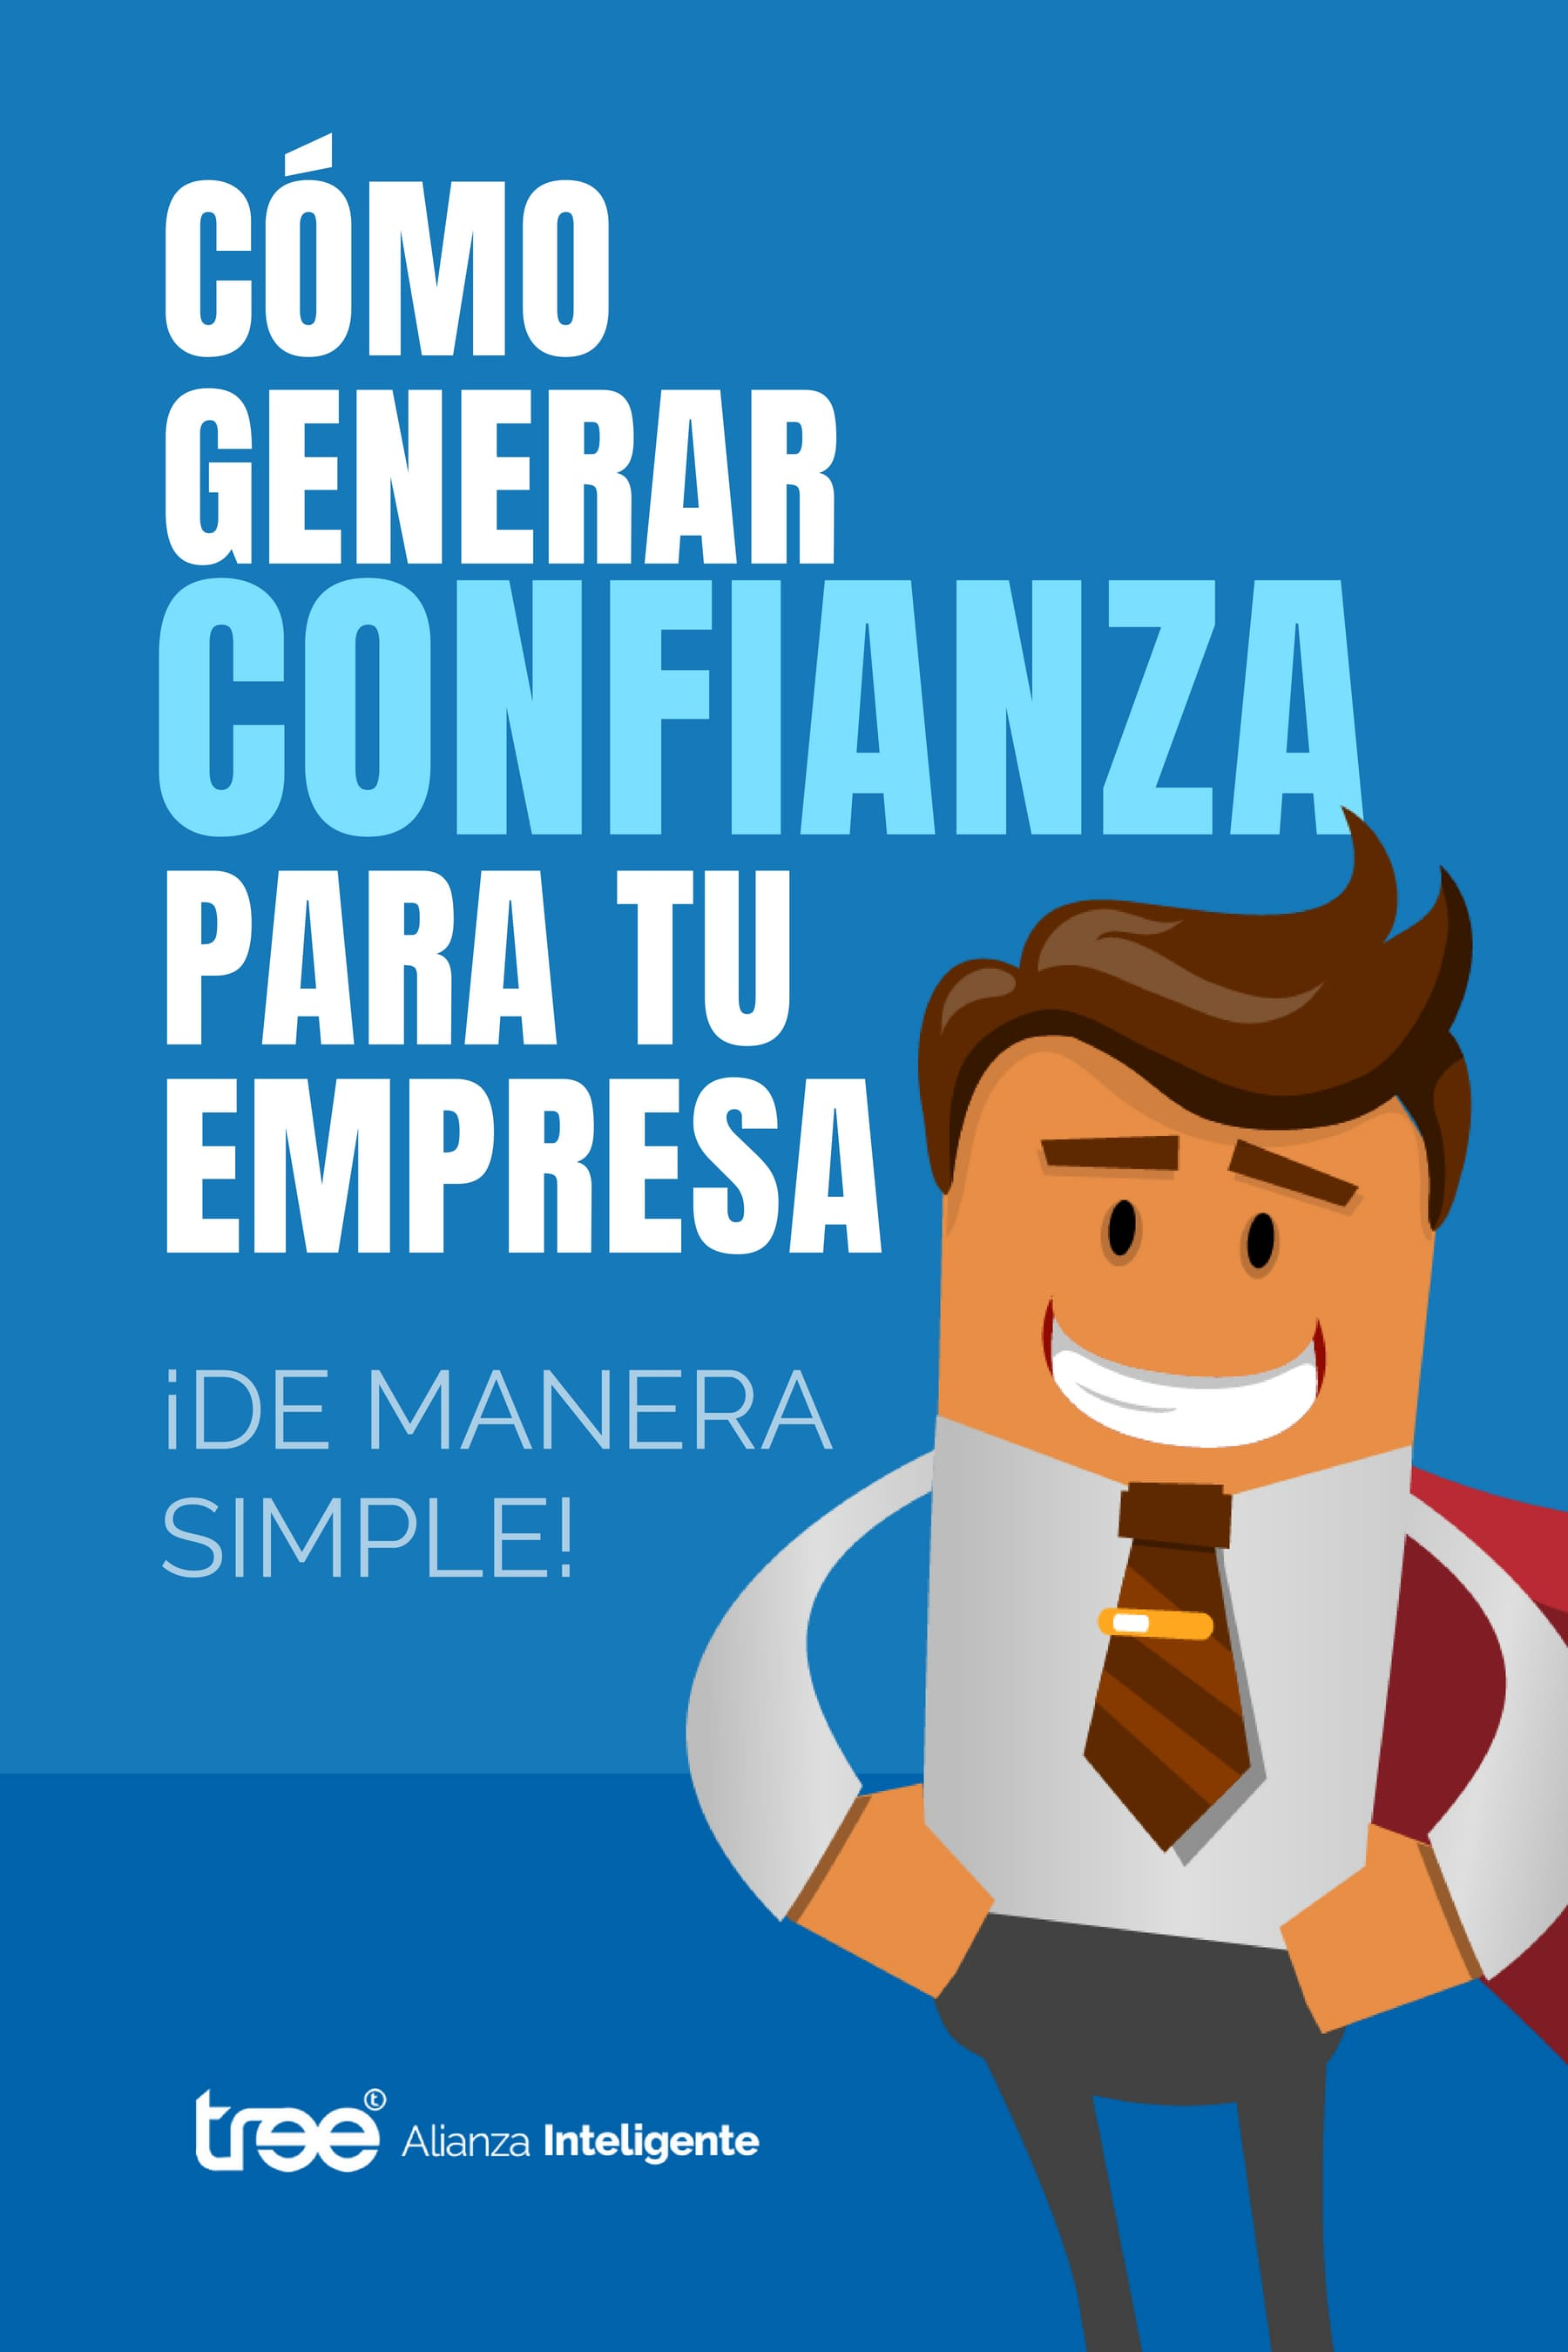 Ebook - Cómo generar confianza para tu empresa